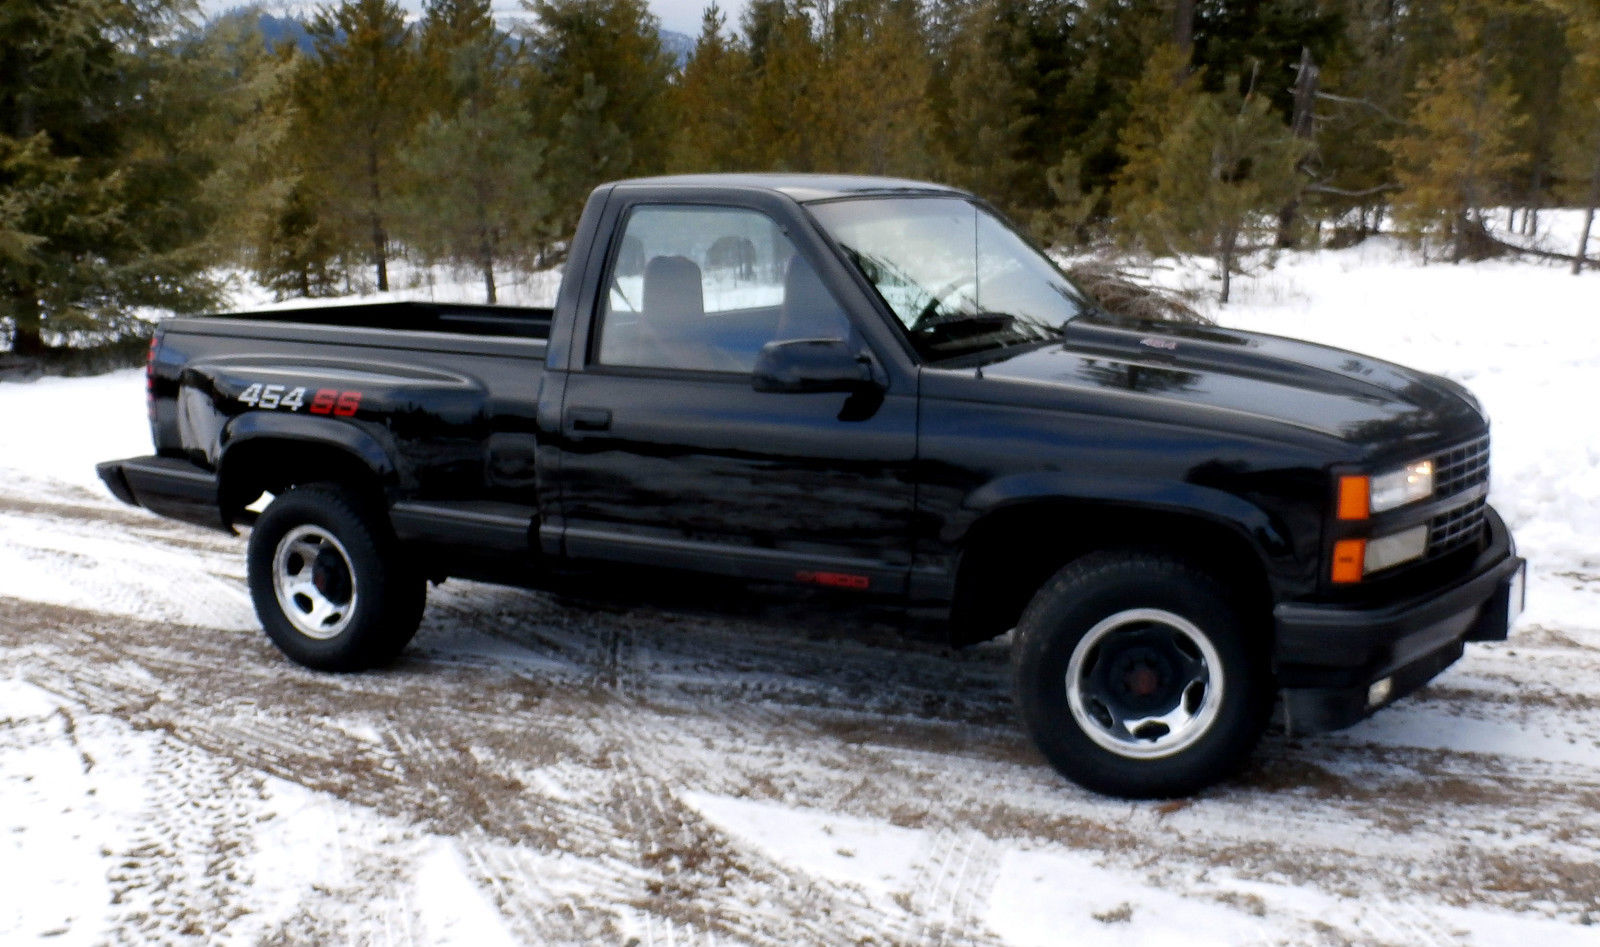 Rare 1990 Chevy 454ss Stepside Pickup For Sale In Spirit